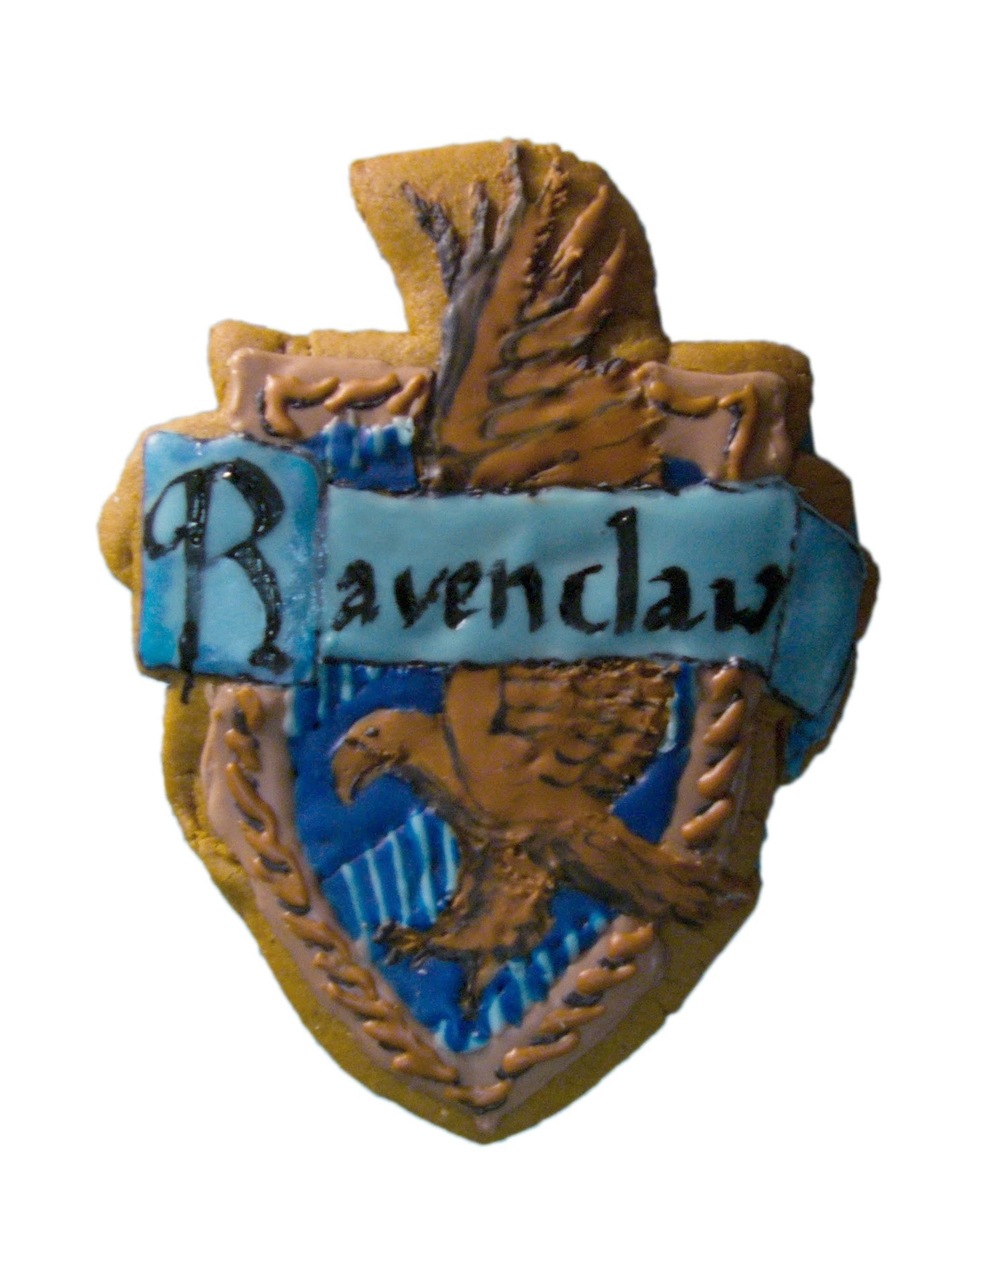 Ravenclaw House gingerbread cookie with hand-painted royal icing